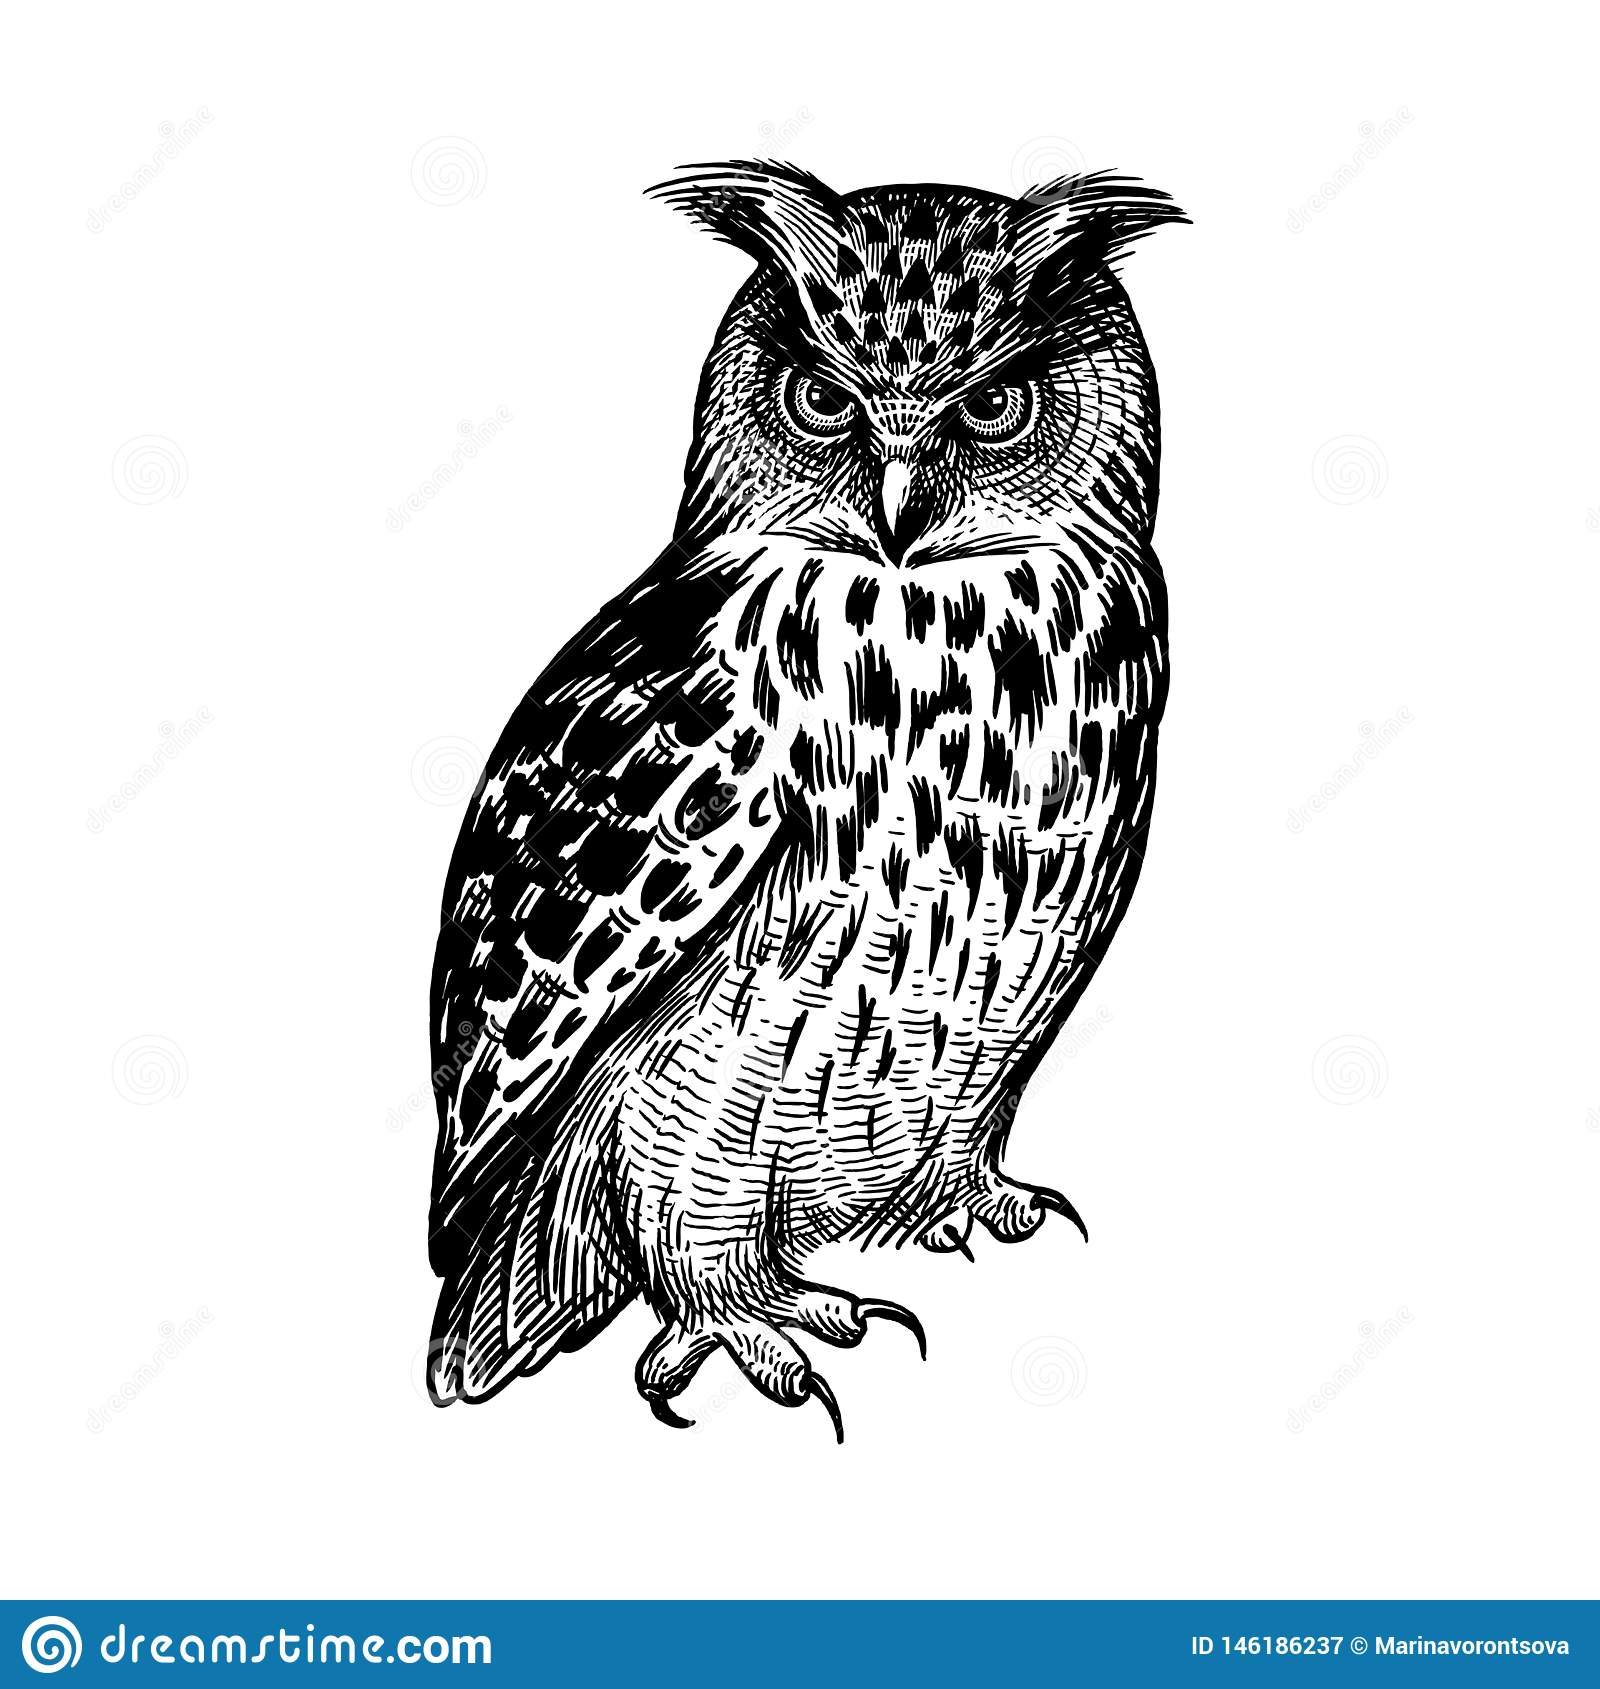 Owl predatory forest bird sketch hand drawing black and